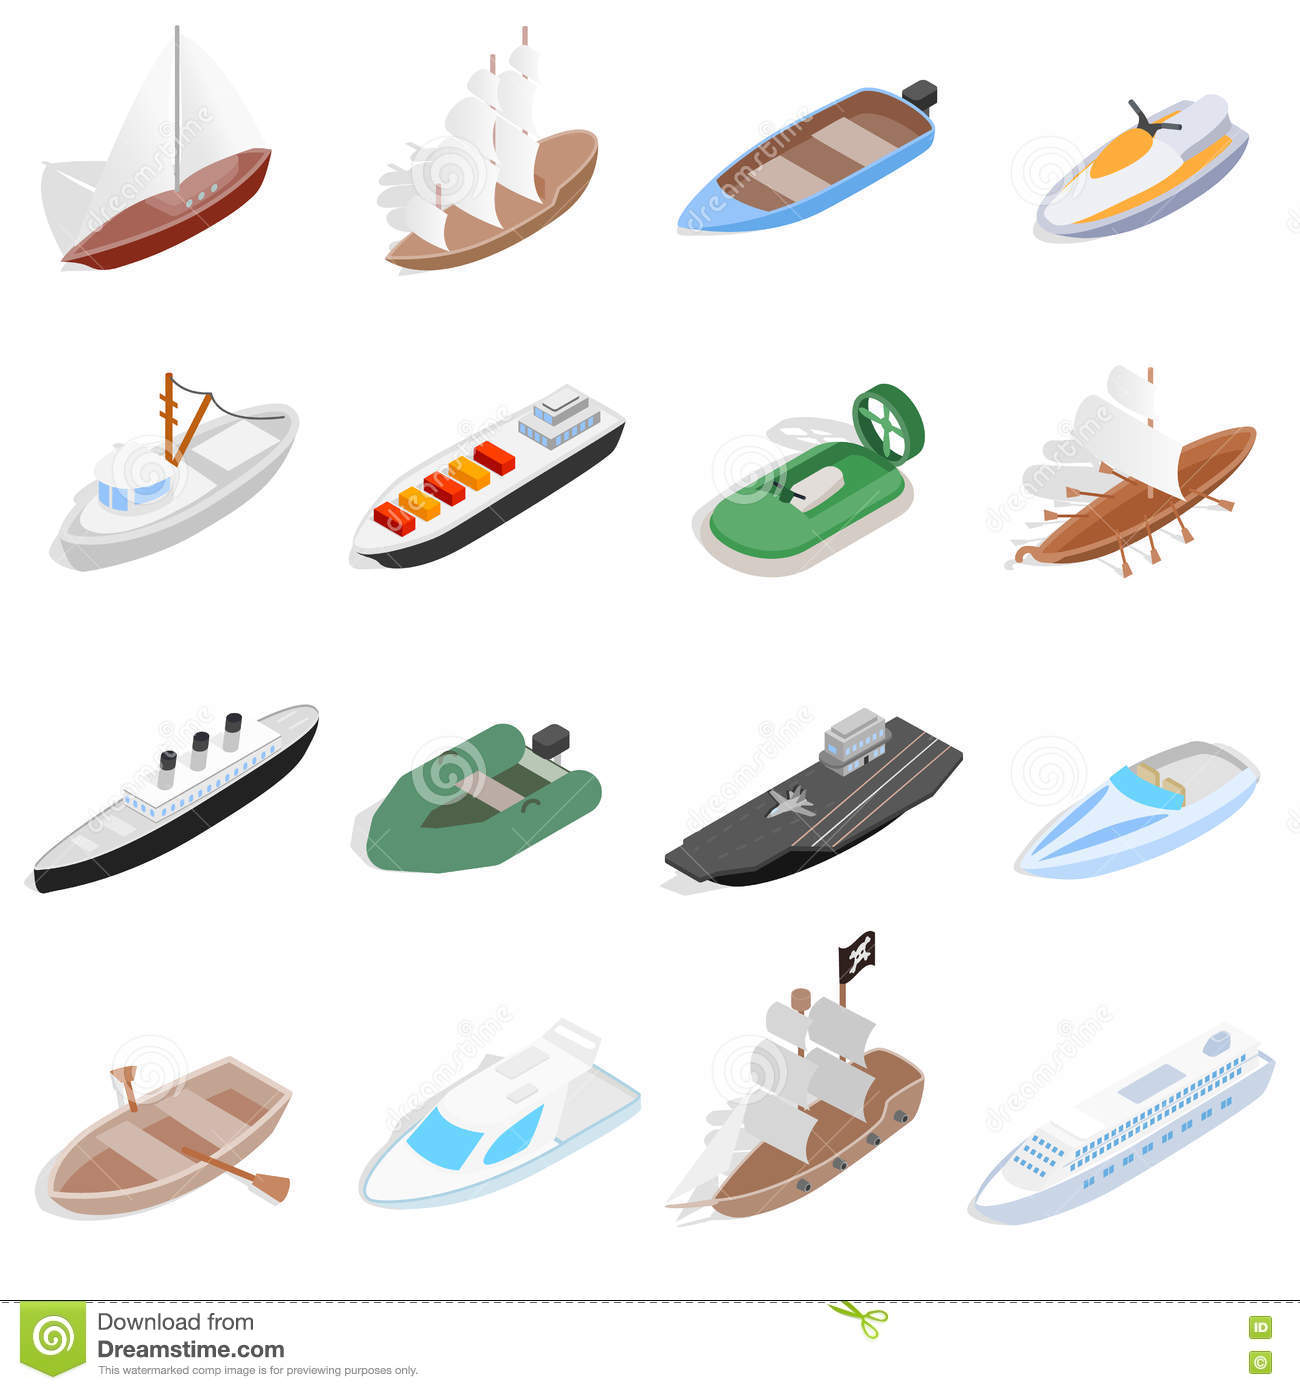 Ship And Boat Icons Set, Isometric 3d Style Stock Vector - Image: 74766440